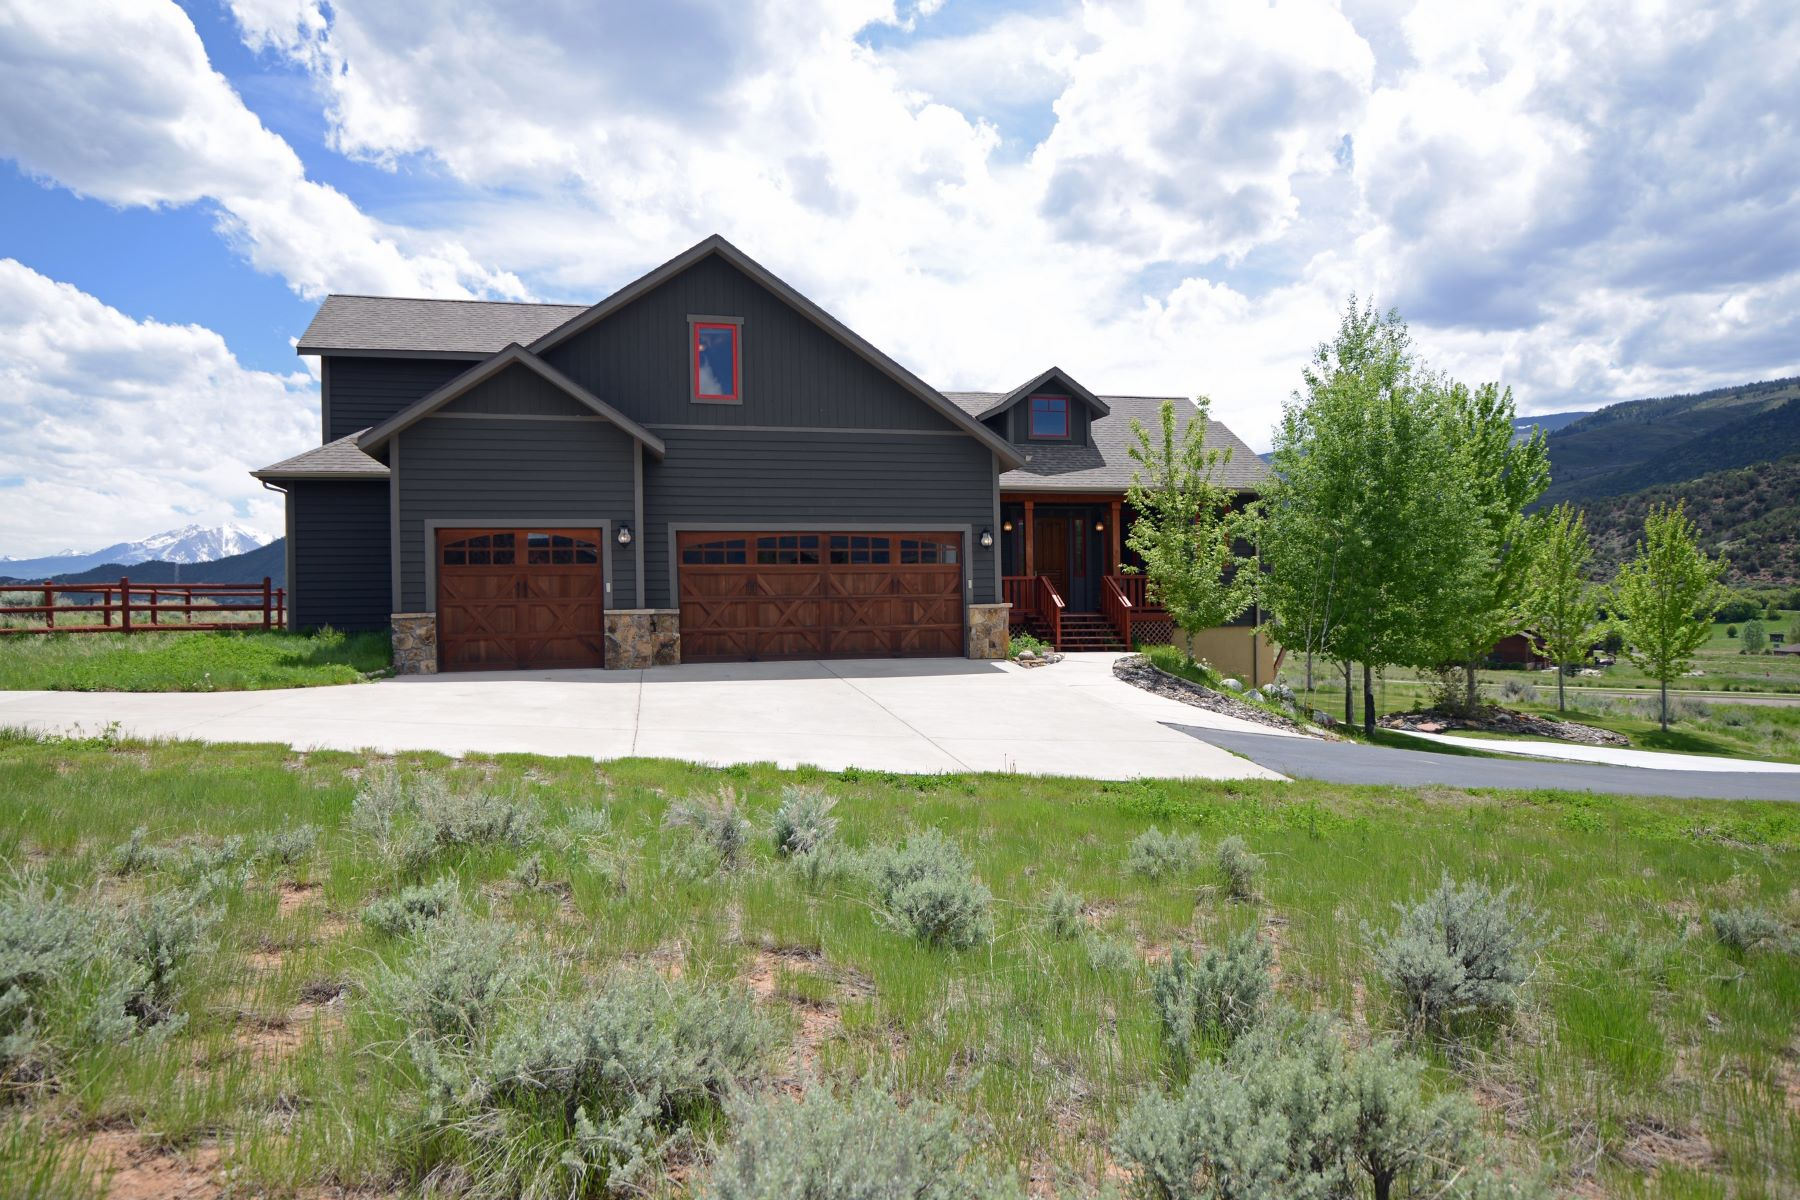 Single Family Home for Sale at Beautiful Large Home in Four Mile Ranch 236 Red Cliff Circle Glenwood Springs, Colorado, 81601 United States